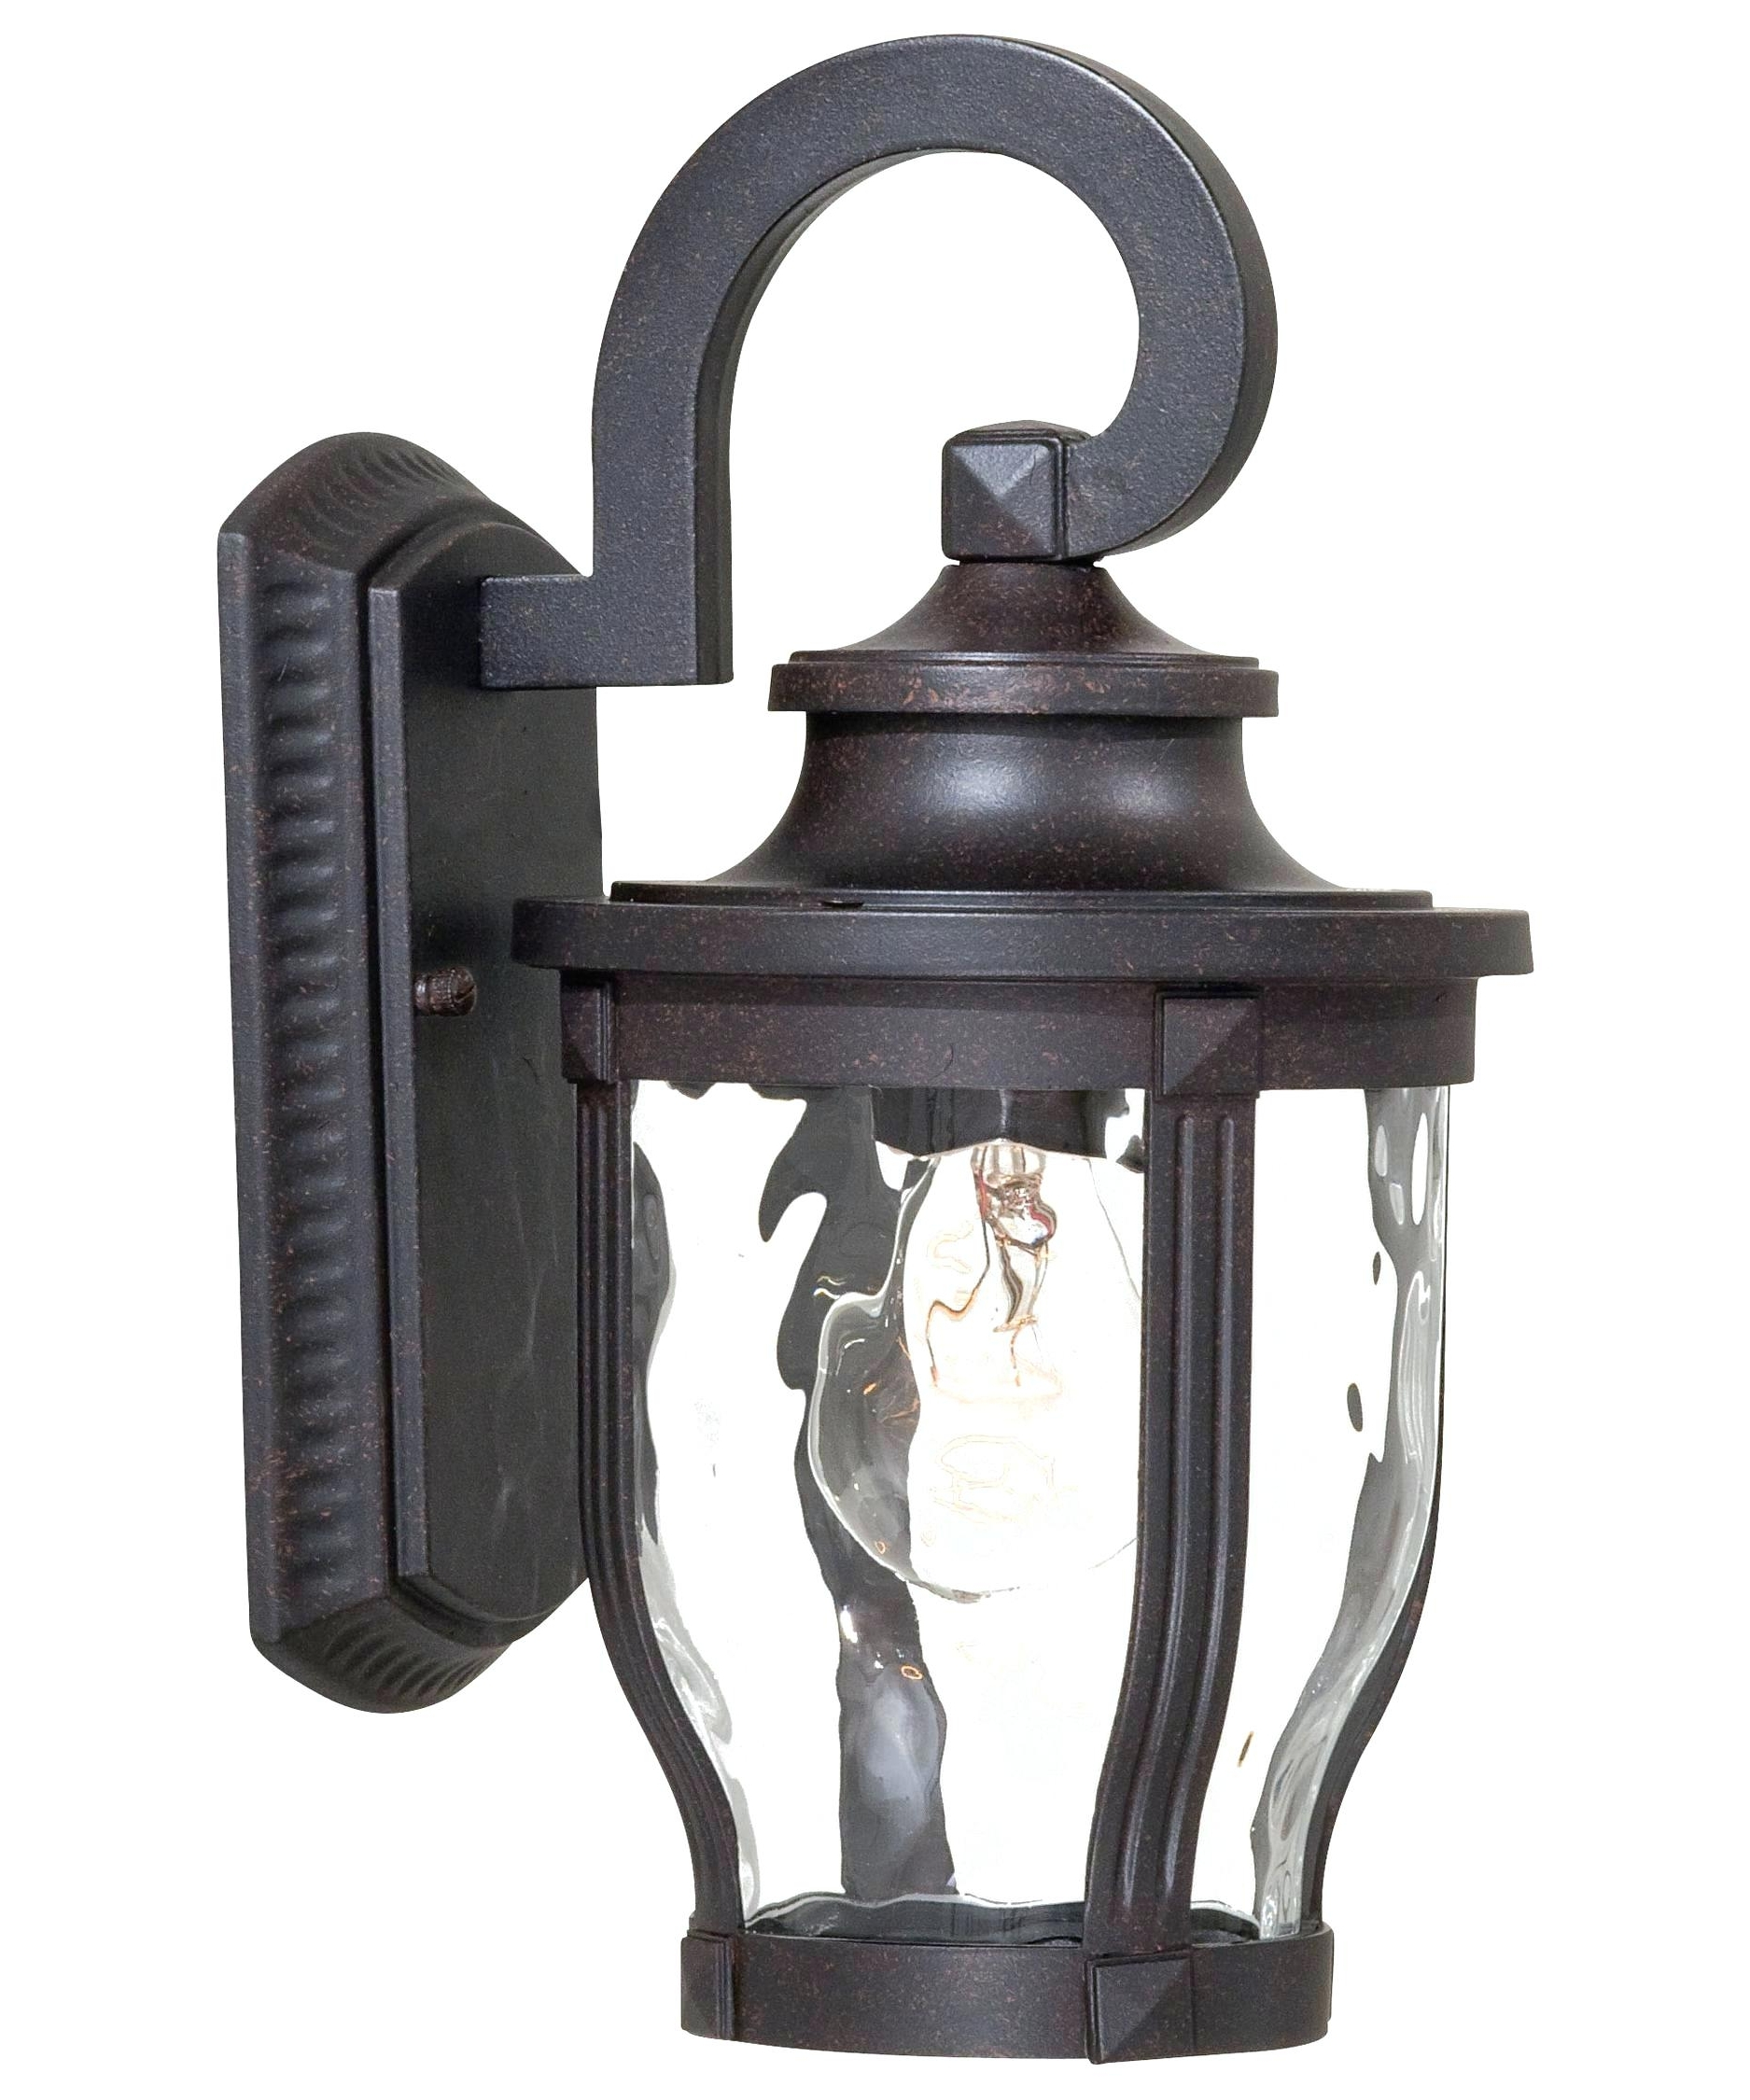 Latest Outdoor Wall Light Fixtures – Everythingbeauty Pertaining To Outdoor Wall Lighting Fixtures At Amazon (View 19 of 20)